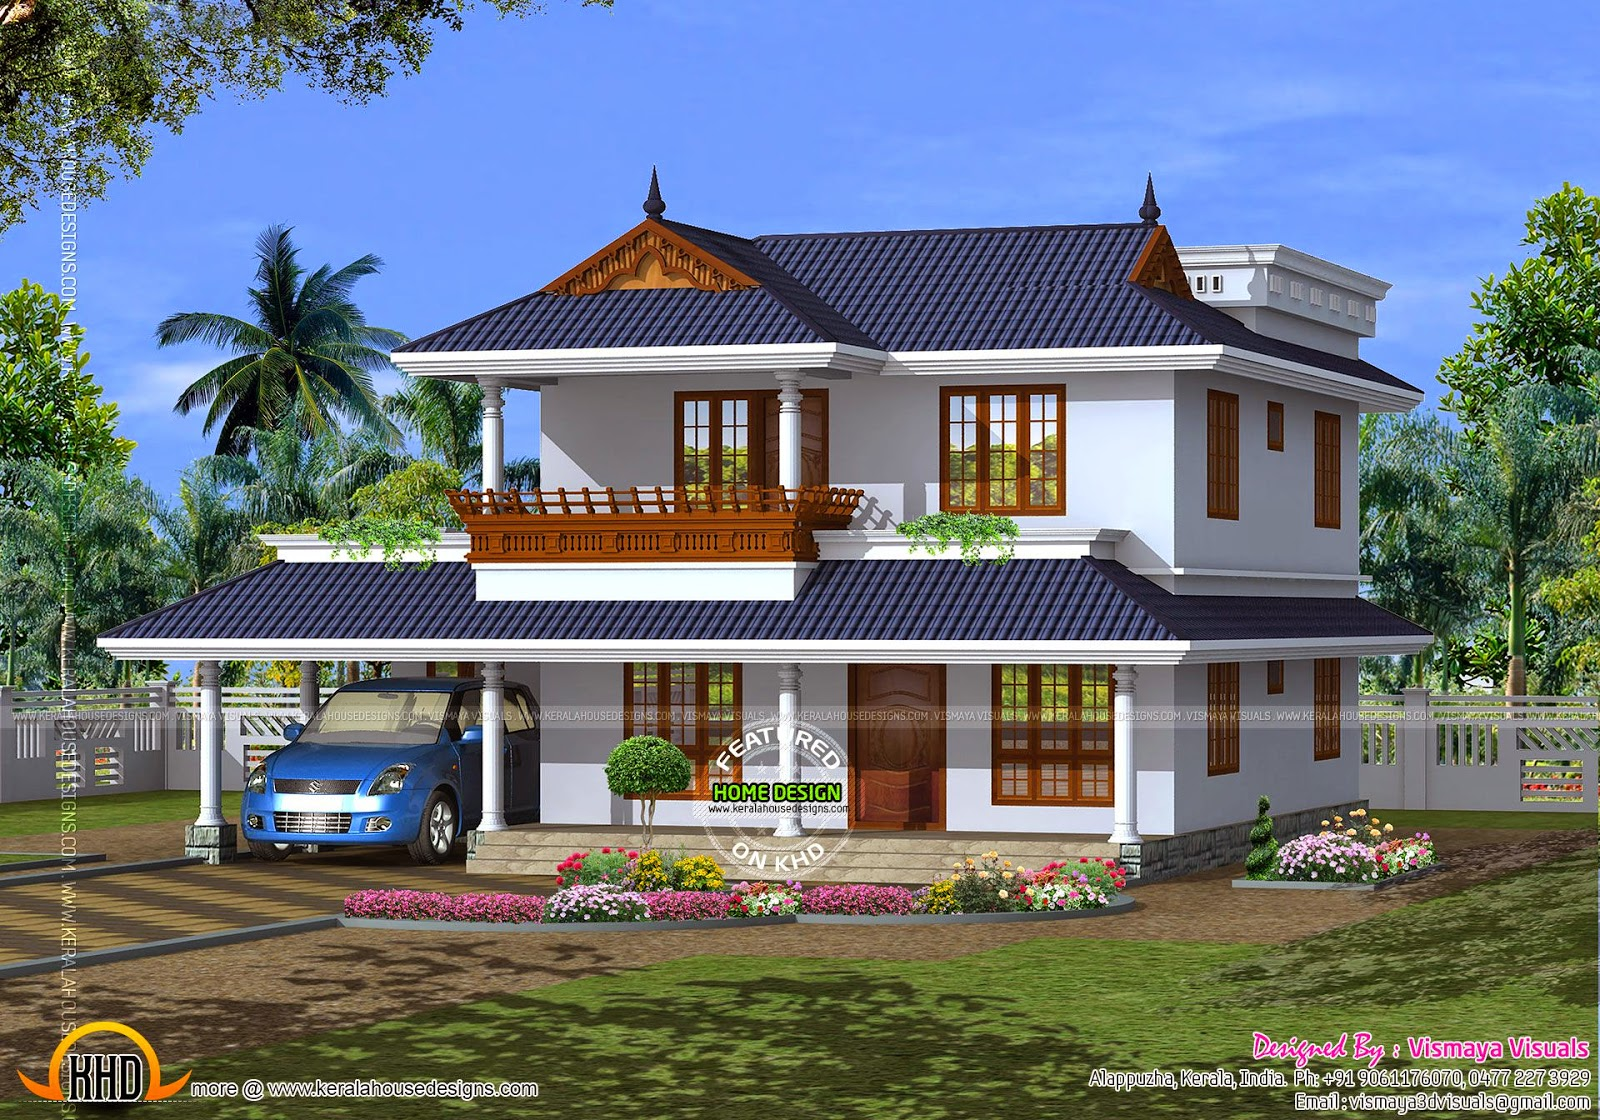 house model kerala kerala home design and floor plans. Black Bedroom Furniture Sets. Home Design Ideas